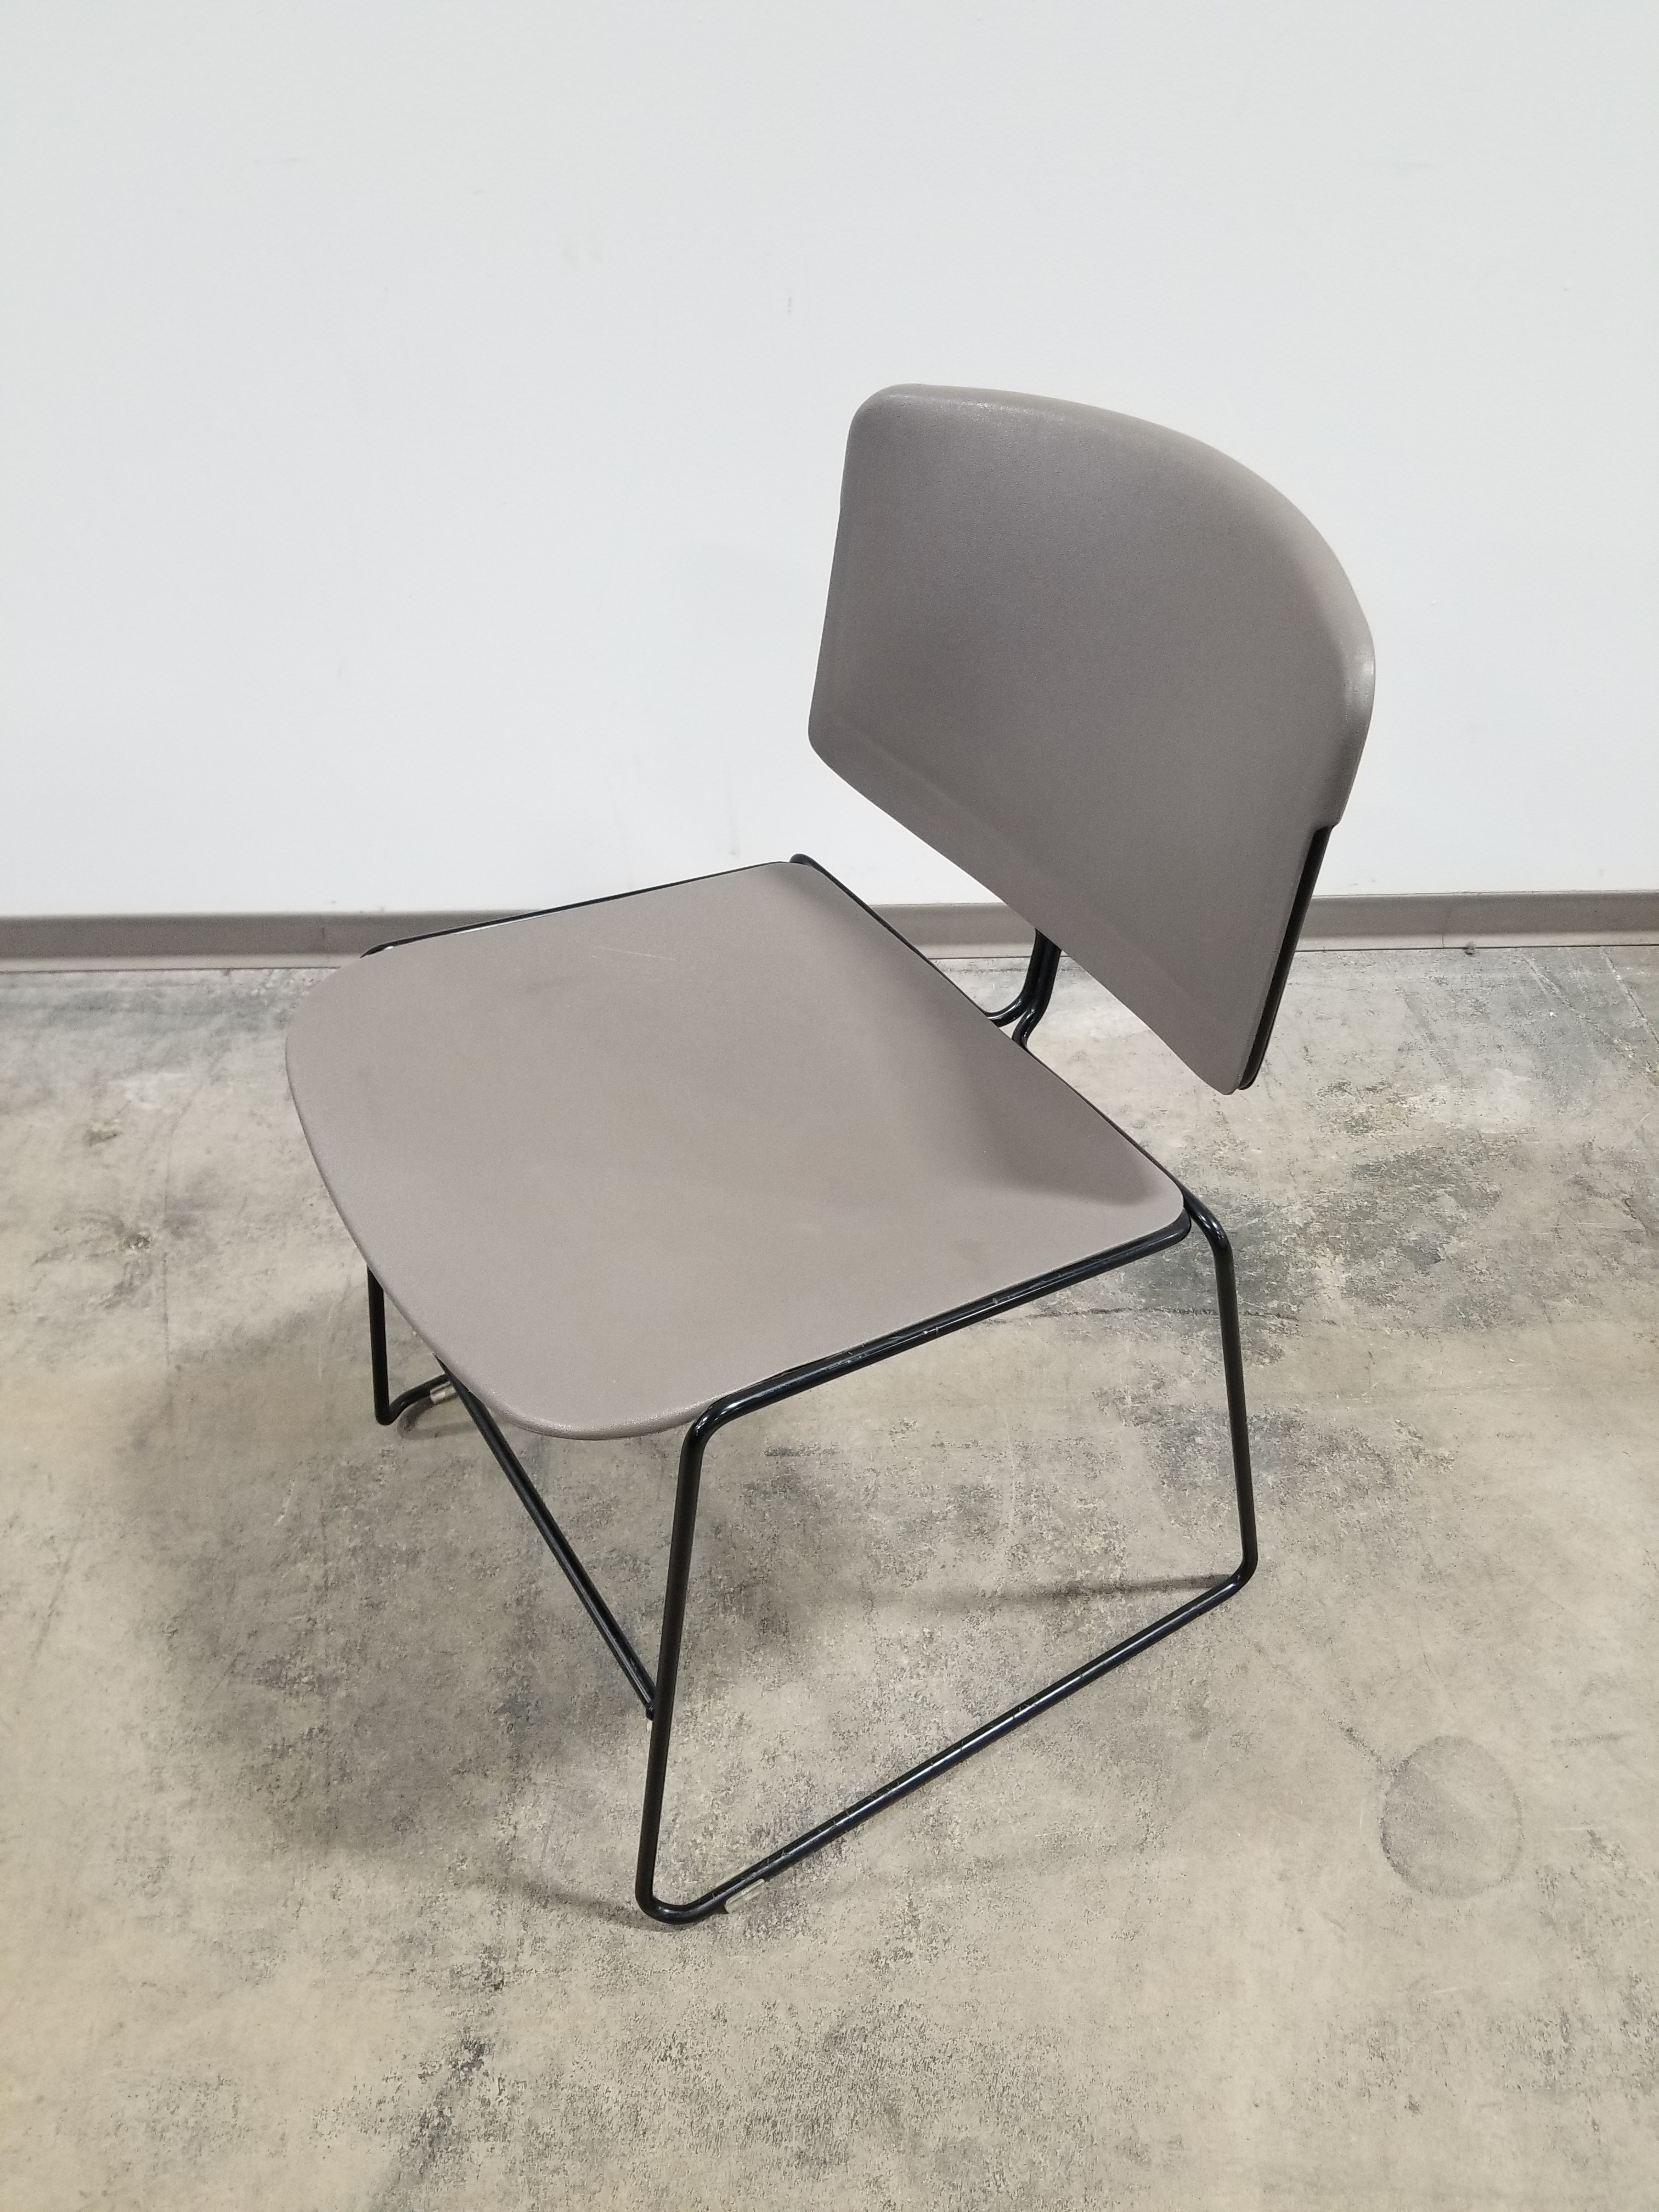 steelcase reply chair review black spandex covers for weddings max stacker office furniture chicago